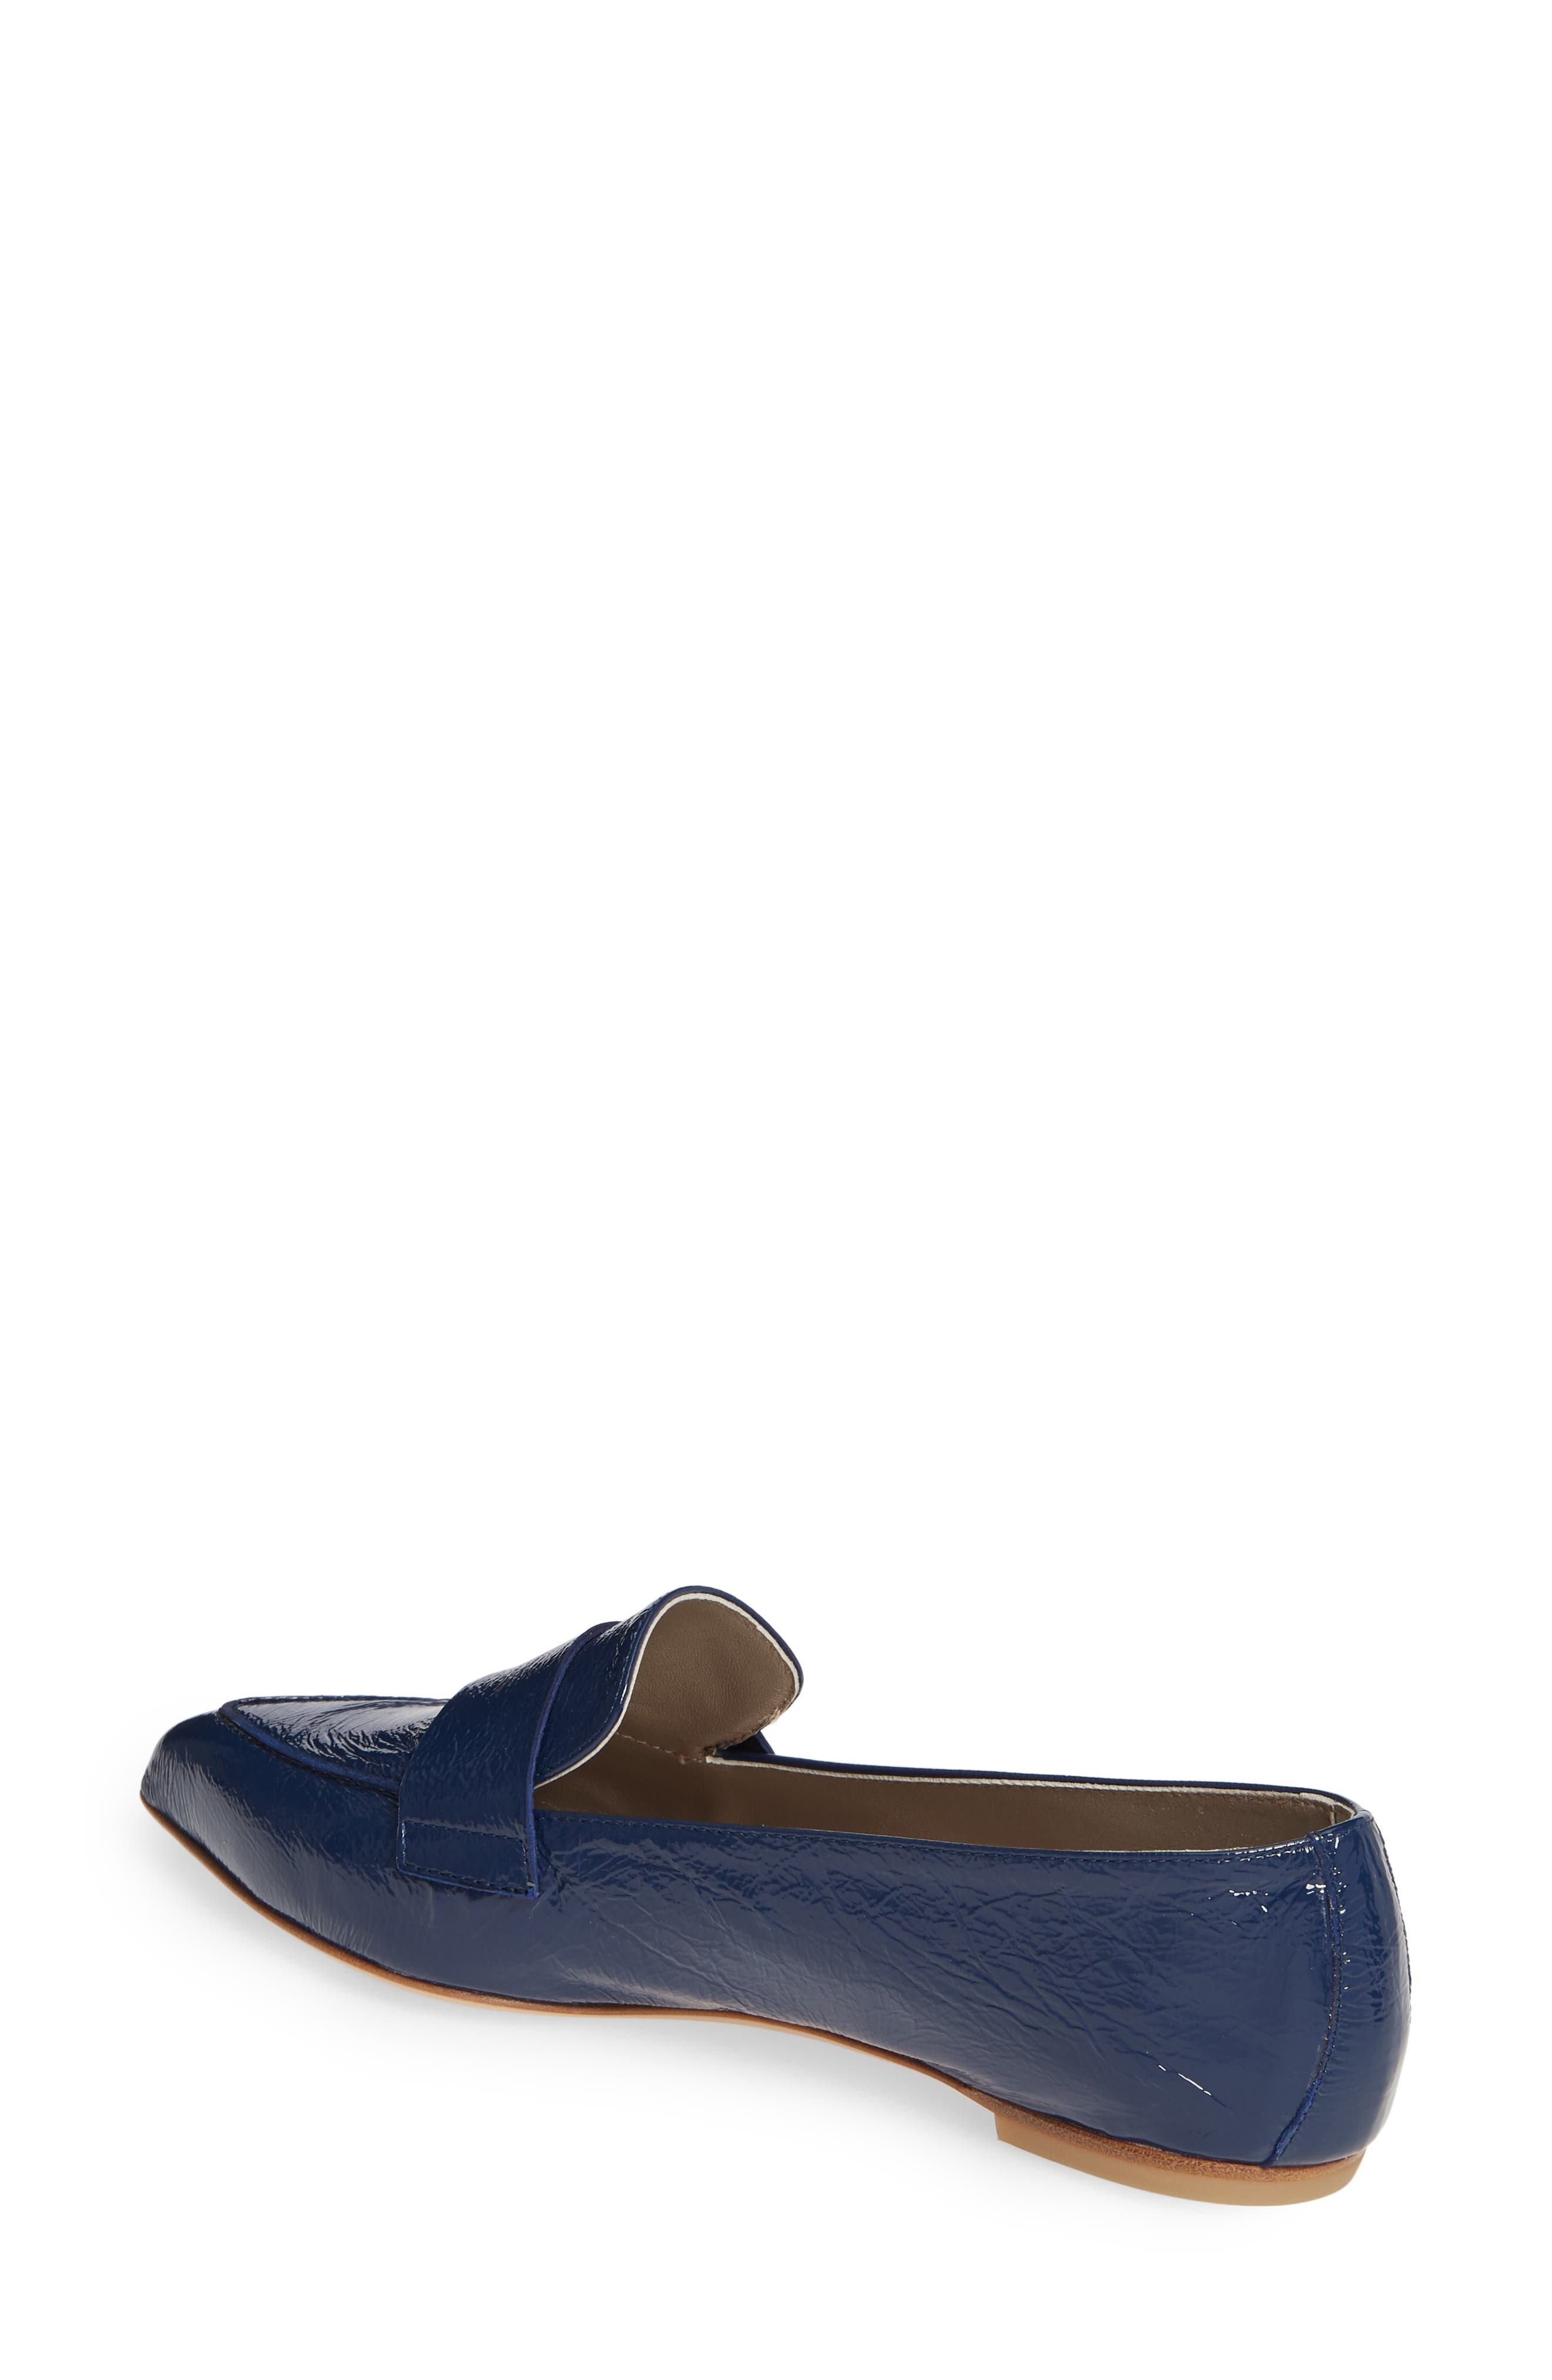 AGL, Softy Pointy Toe Moccasin Loafer, Alternate thumbnail 2, color, OCEAN PATENT